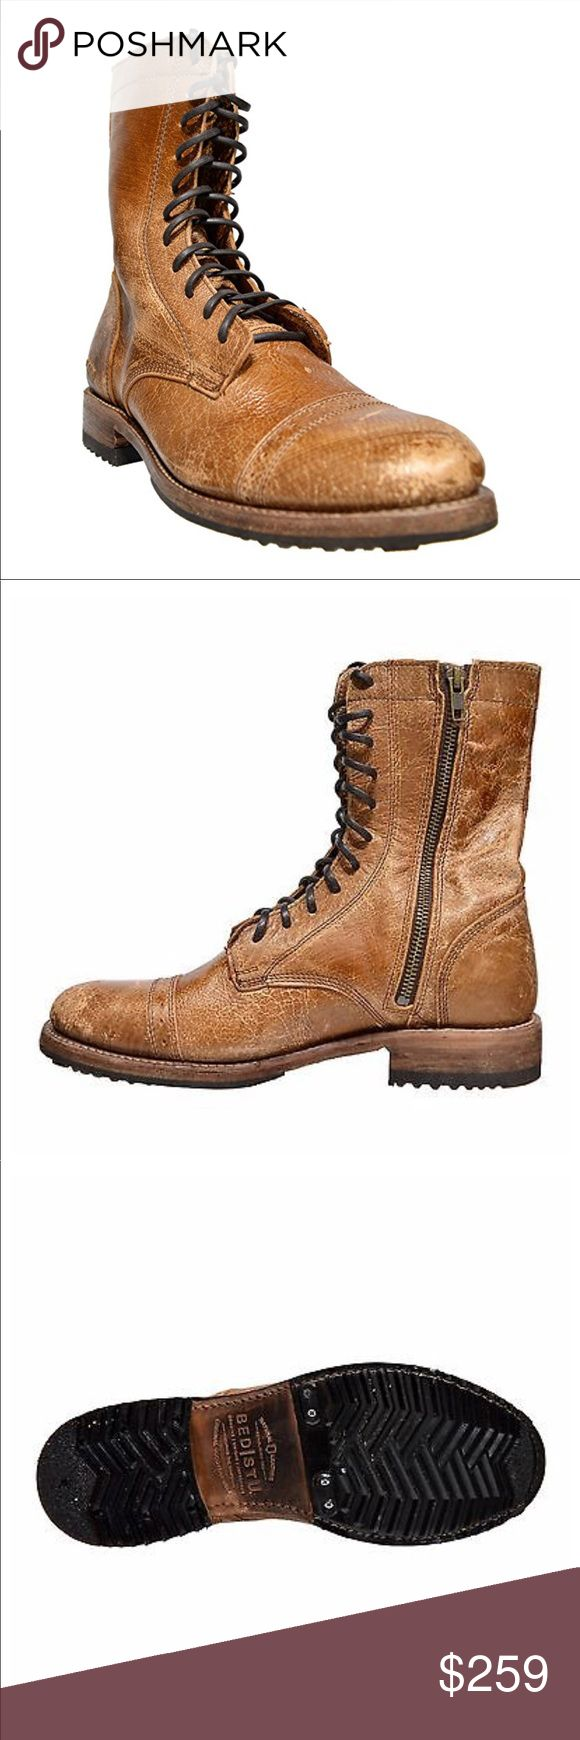 """Bed Stu Hendrix distres Leather Combat Boot unisex Bed Stu Hendrix Men's Military Inspired Grain Leather Cap-toe Combat Boots Tan NEW Hand made in Mexico BED STÜ Organics*  • Chrome free, vegetable tanned leather upper • Handmade by Real People • Cap toe design w/ perforated detail  • 9"""" shaft height, 1"""" heel height • Goodyear welted outsole w/ durable lug outsole  • Made in Leon, Mexico Bed Stu Shoes Boots"""